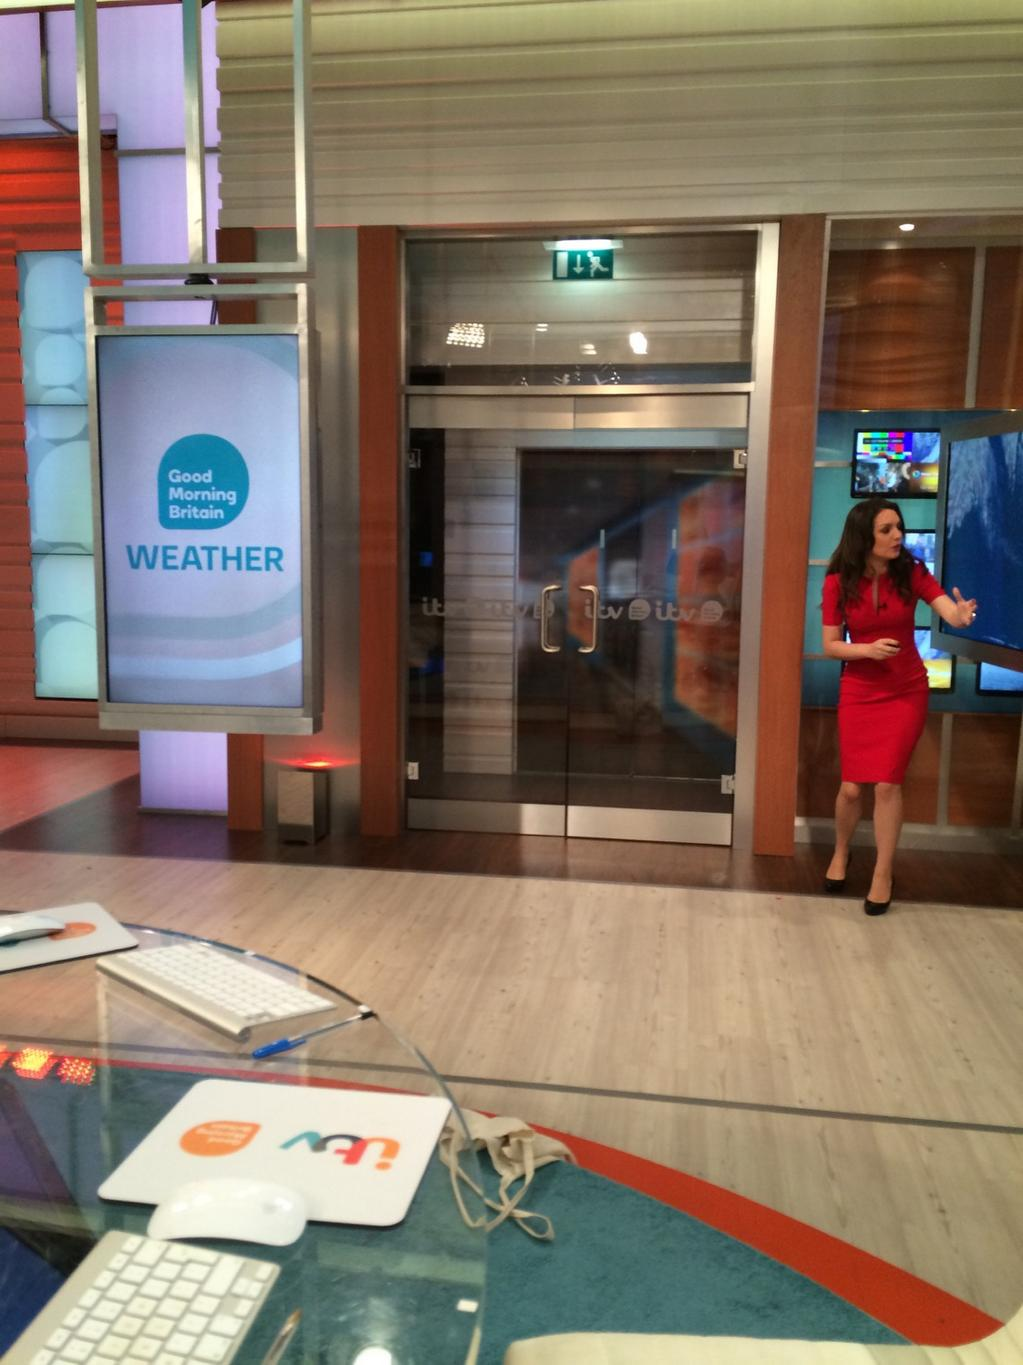 You can tell it's serious @Lauratobin1 going through weather with a point and dip!! @GMB http://t.co/jqPGxK7OHc